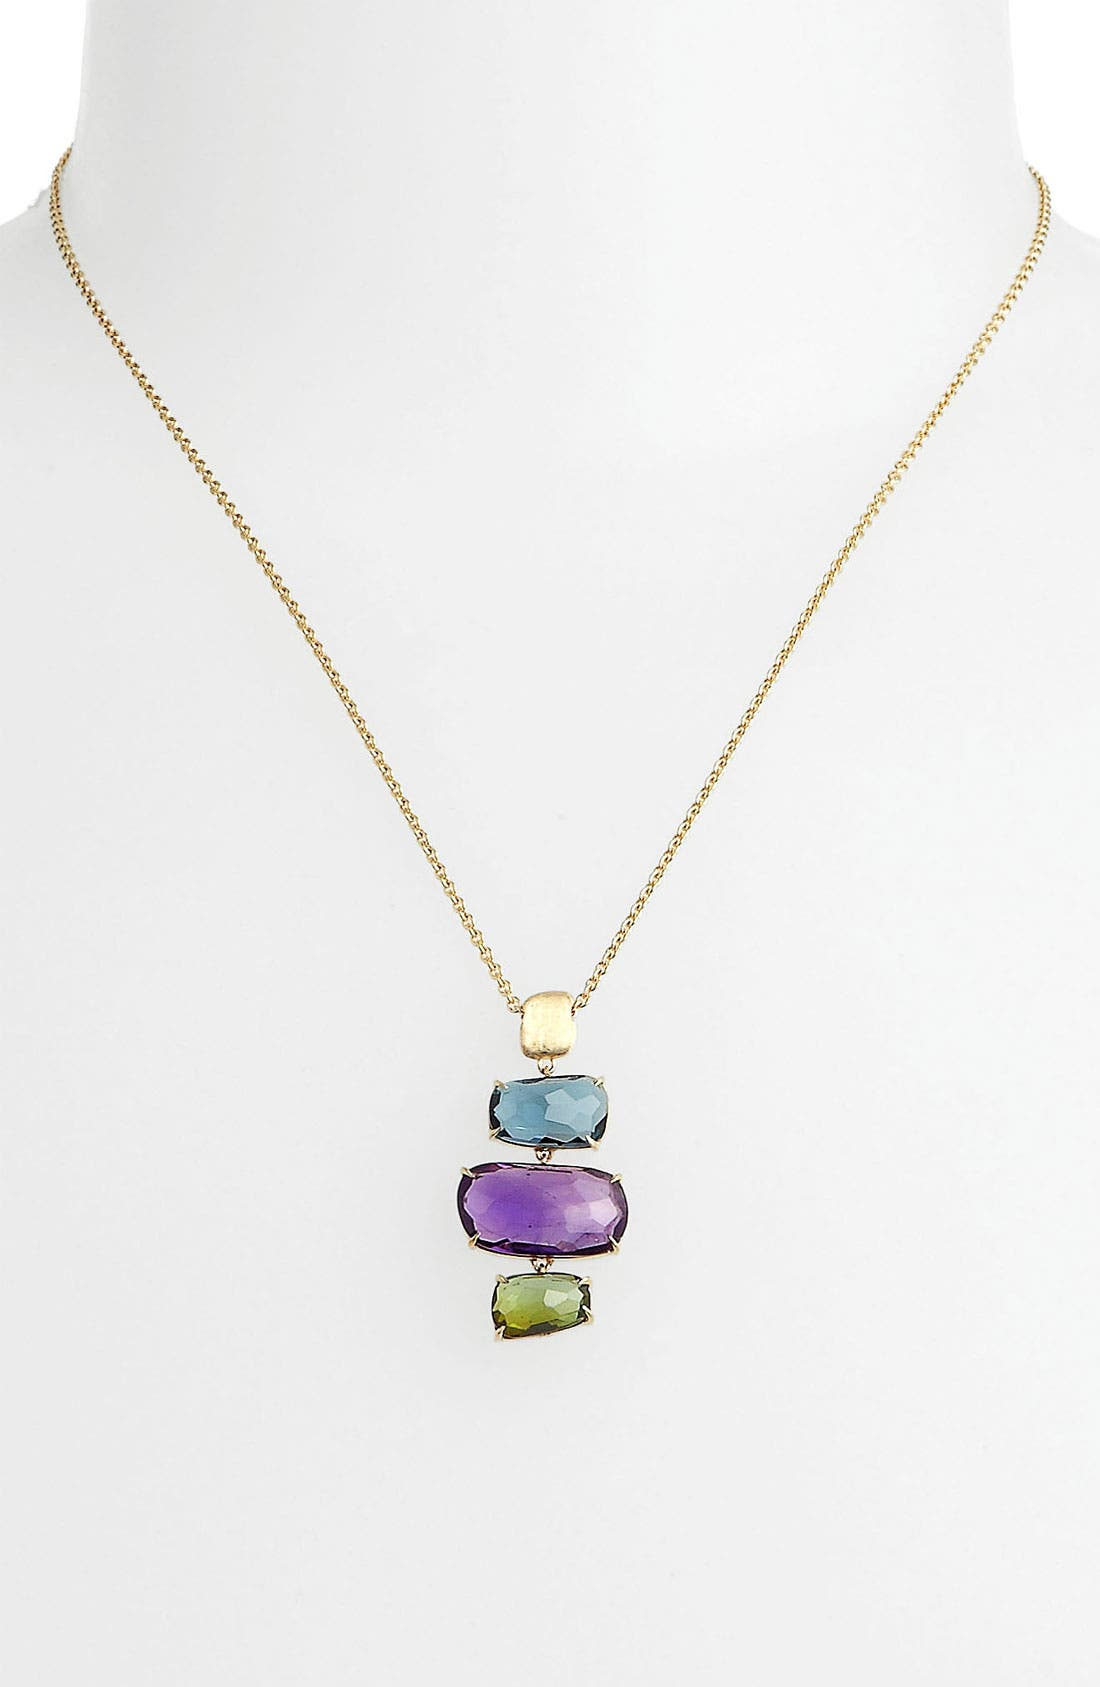 Alternate Image 1 Selected - Marco Bicego 'Murano' Mix Stone Cluster Pendant Necklace